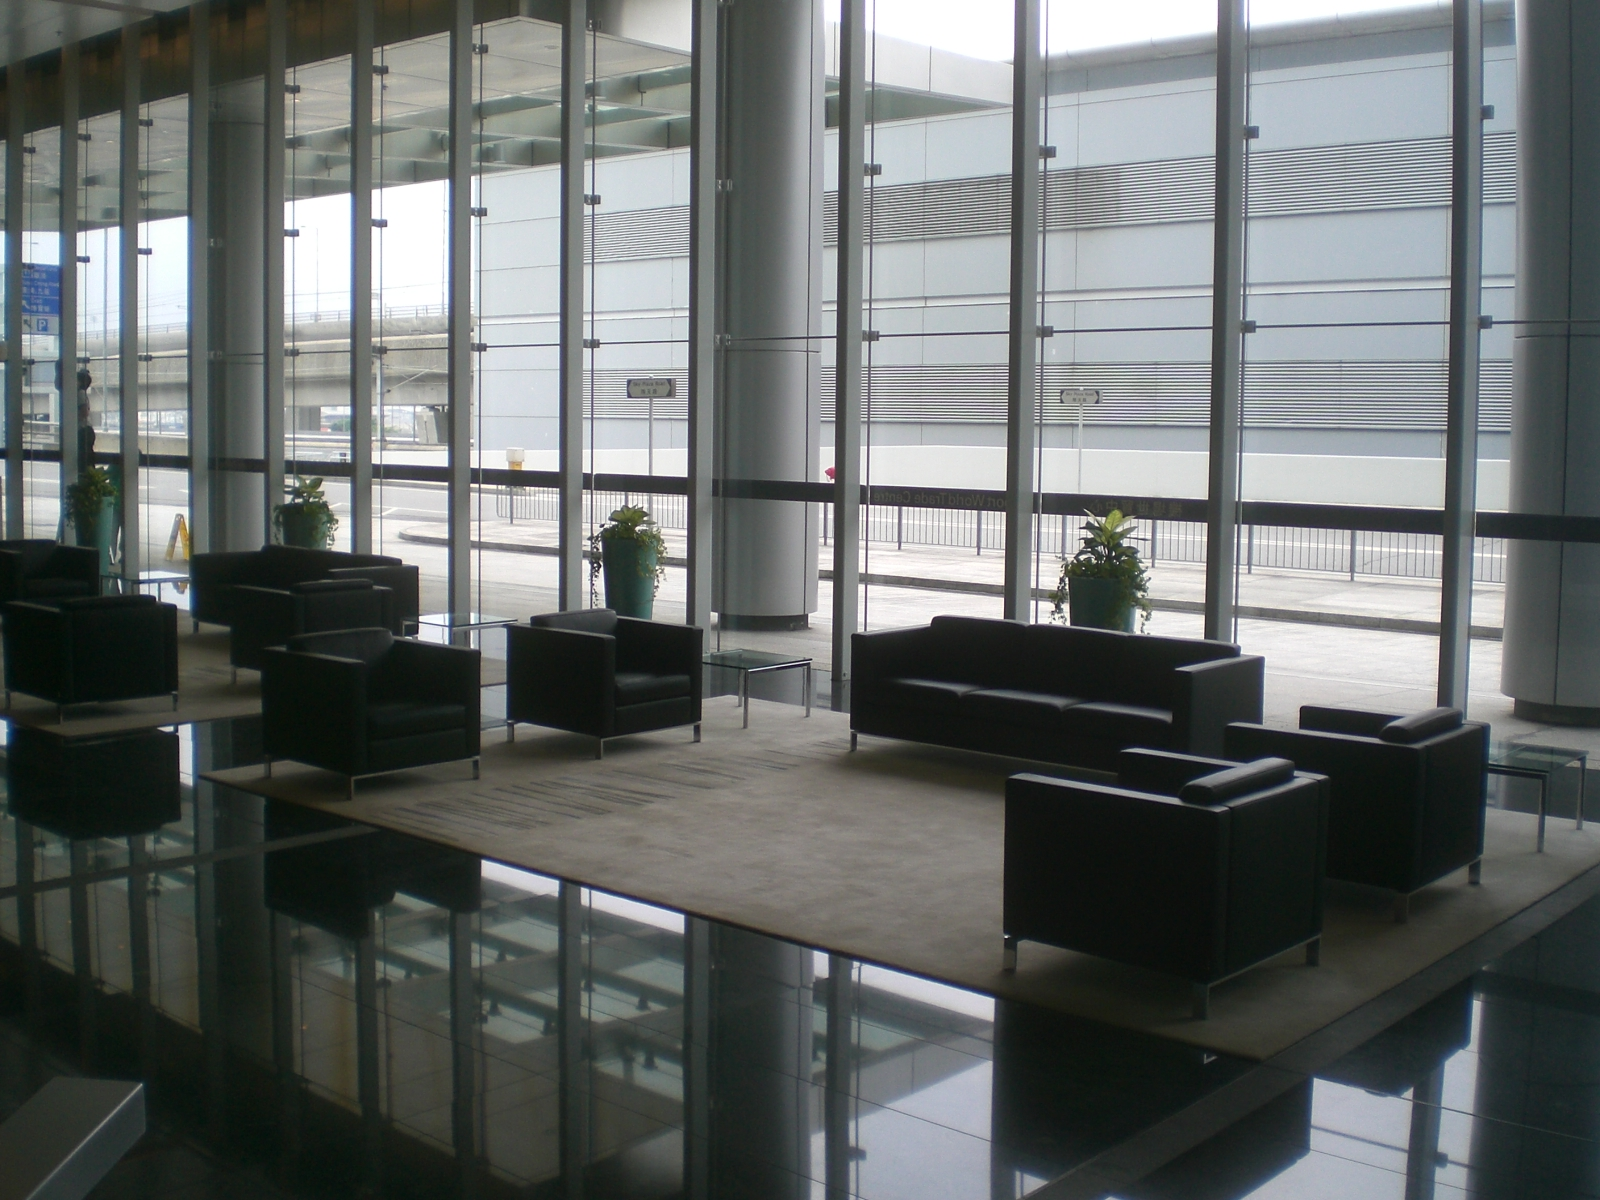 File hk skycity airport world trade centre lobby hall jpg for Interieur world trade center